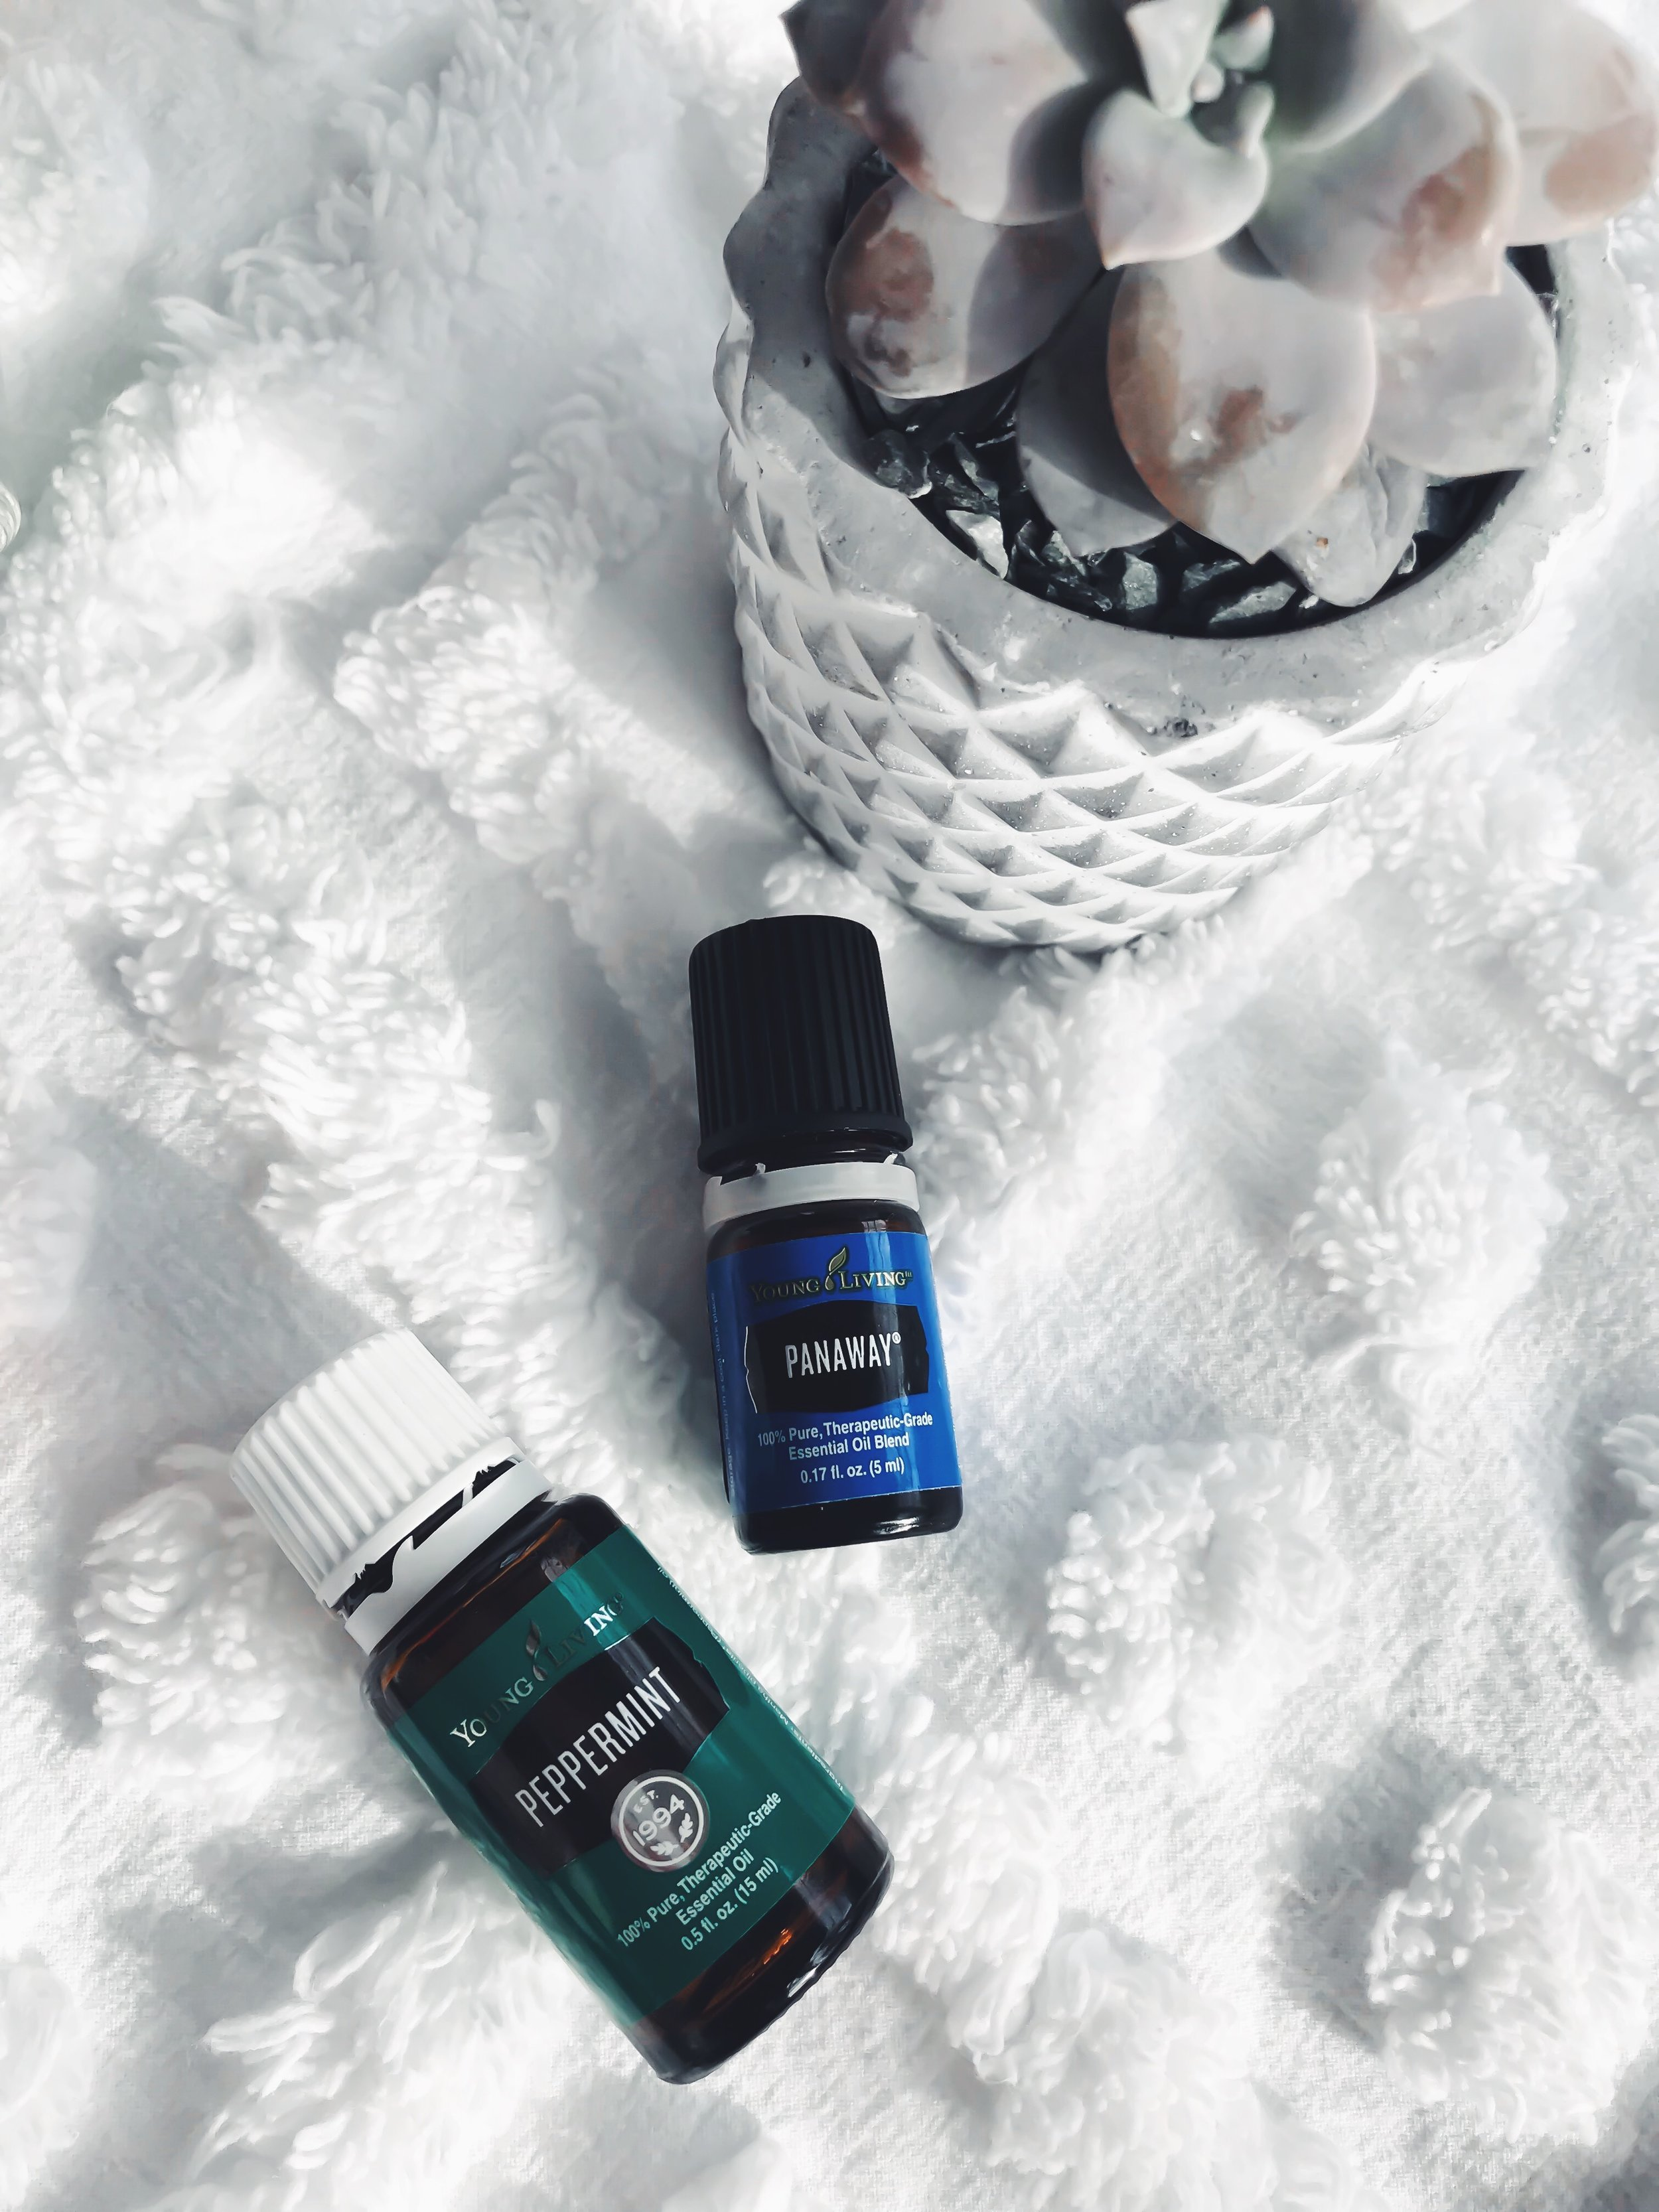 5 Ways to Use Essential Oils Every Day | Pine Barren Beauty | how to use essential oils, essential oils 101, young living essential oils